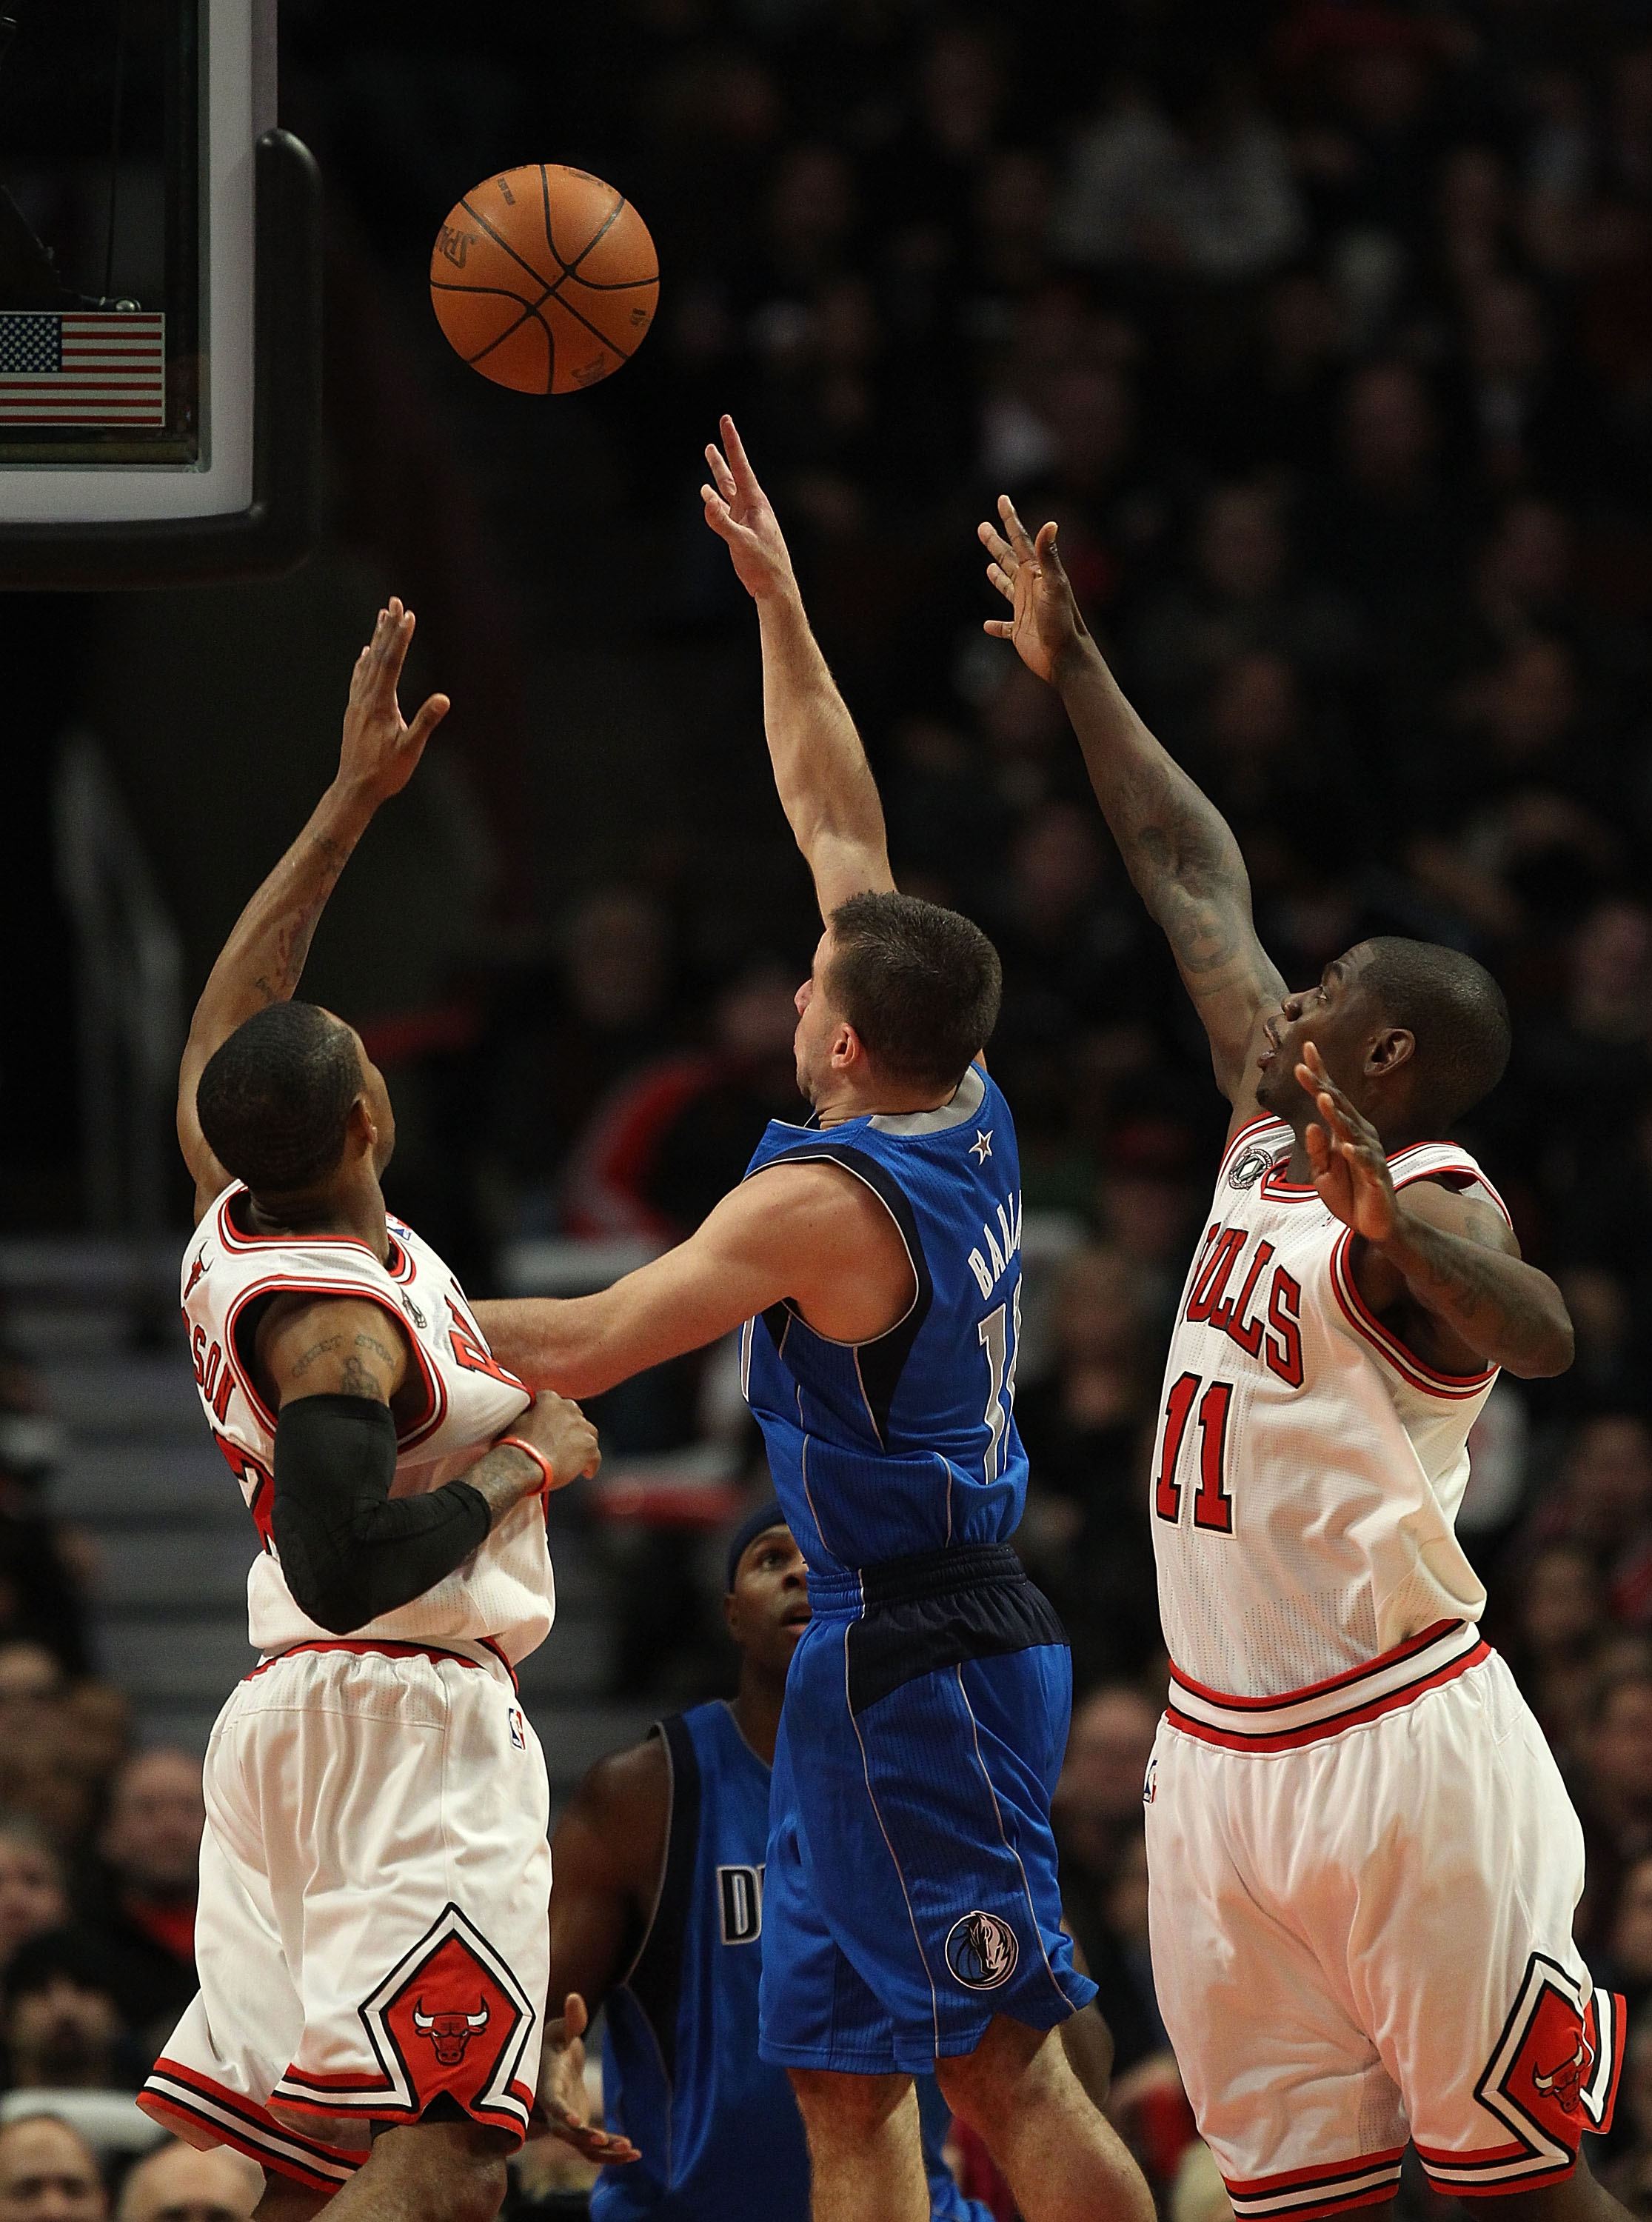 CHICAGO, IL - JANUARY 20: Jose Barera #11 of the Dallas Mavericks goes up for a shot between C.J. Watson #32 and Ronnie Brewer #11 of the Chicago Bulls at the United Center on January 20, 2011 in Chicago, Illinois. The Bulls defeated the Mavericks 82-77.